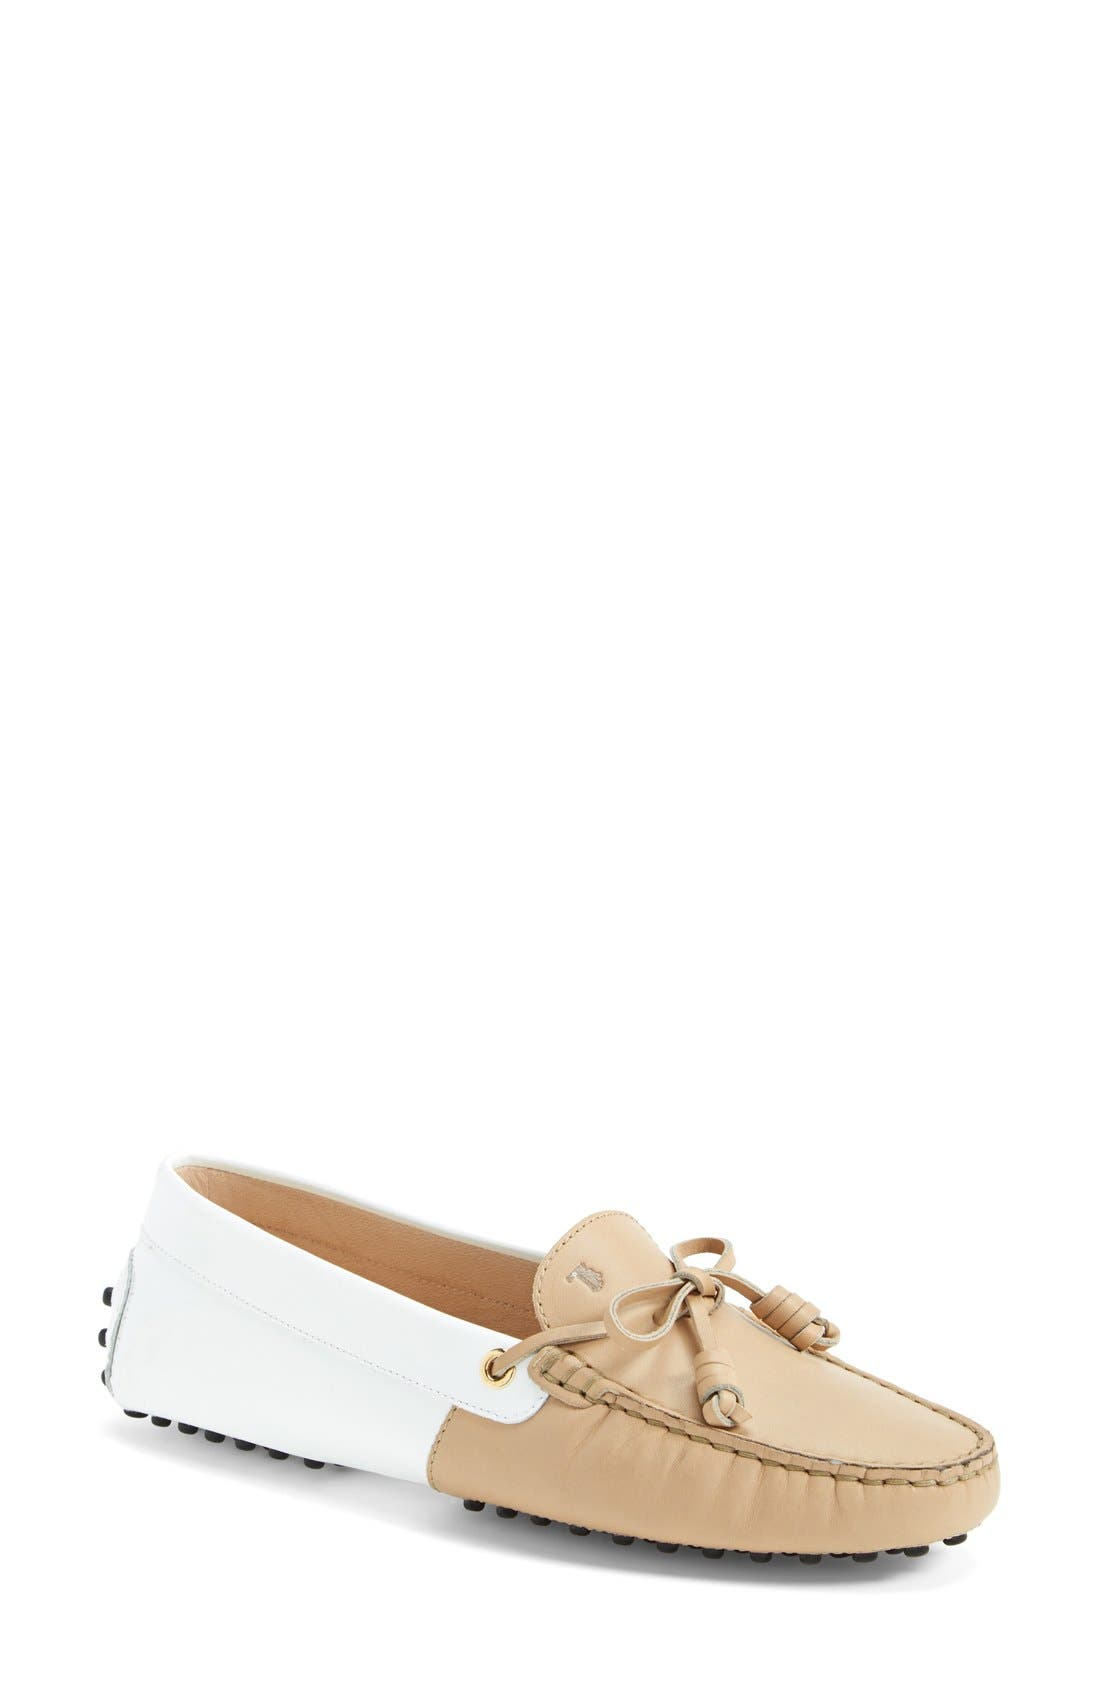 Main Image - Tod's 'Gommini - Curly' Leather Driving Moccasin (Women)